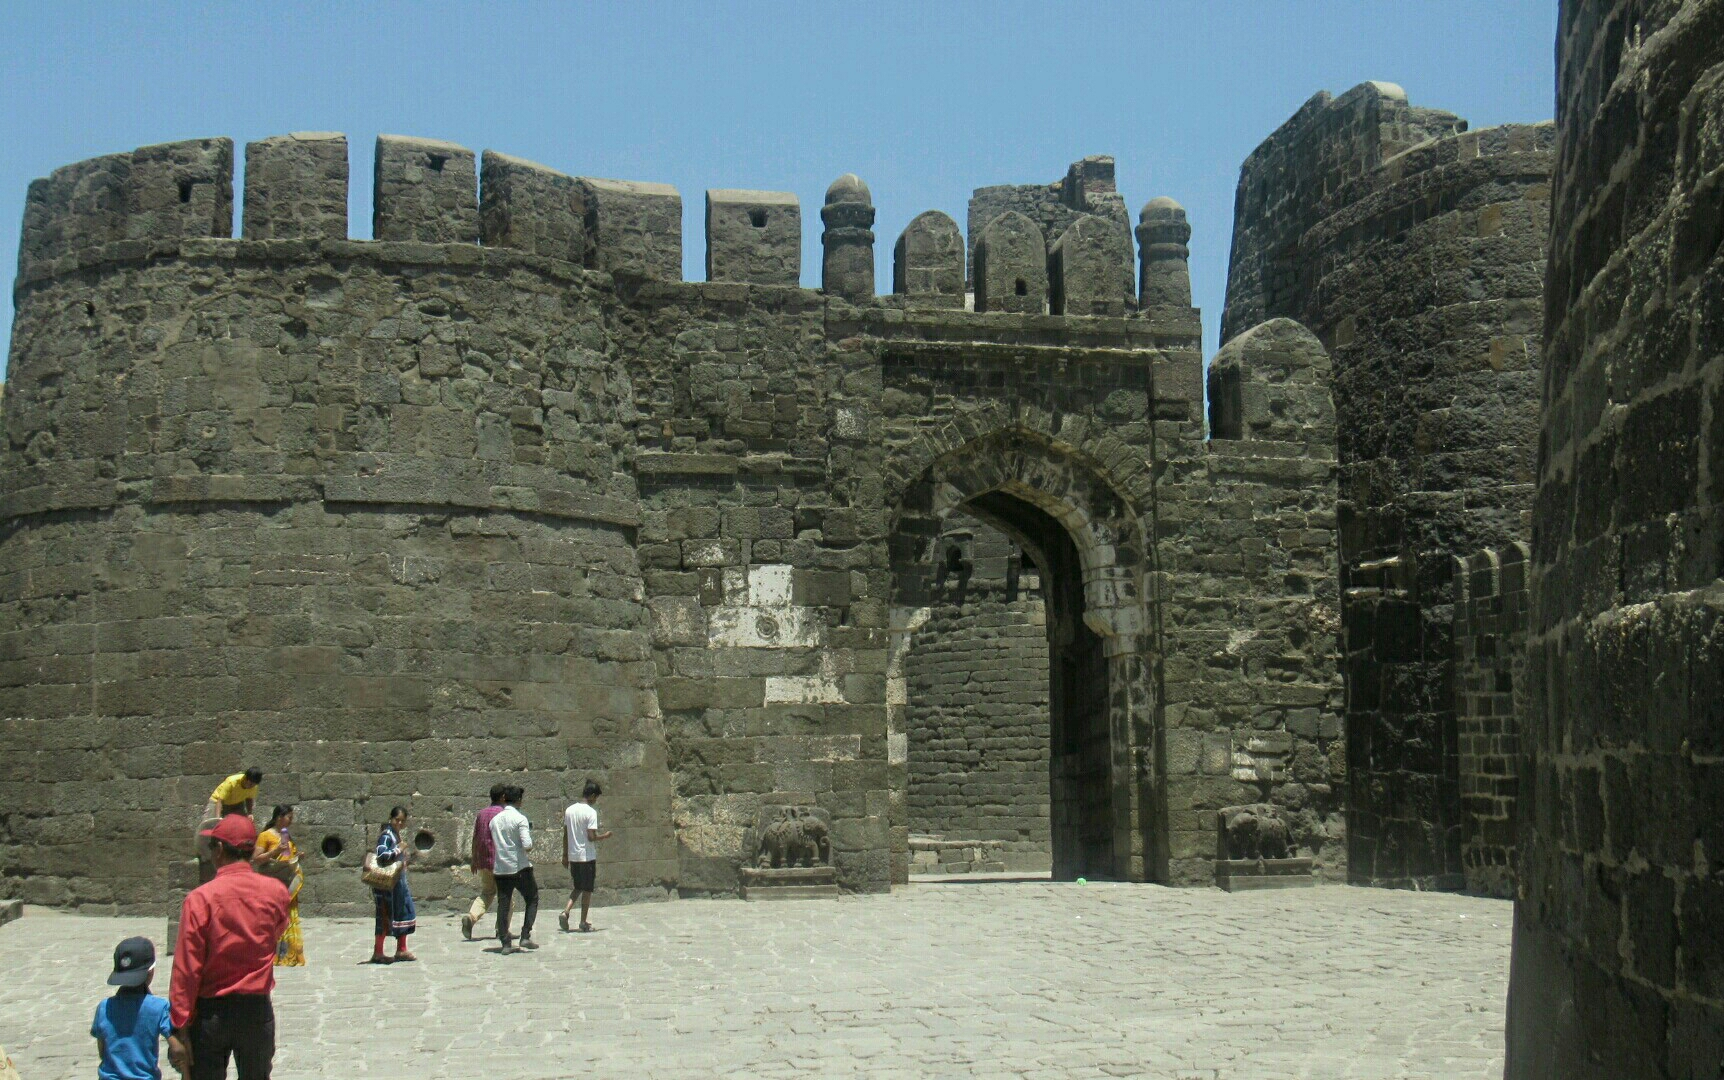 Daulatabad Fort - The Fort That First Heard the Tughlaqi Edict